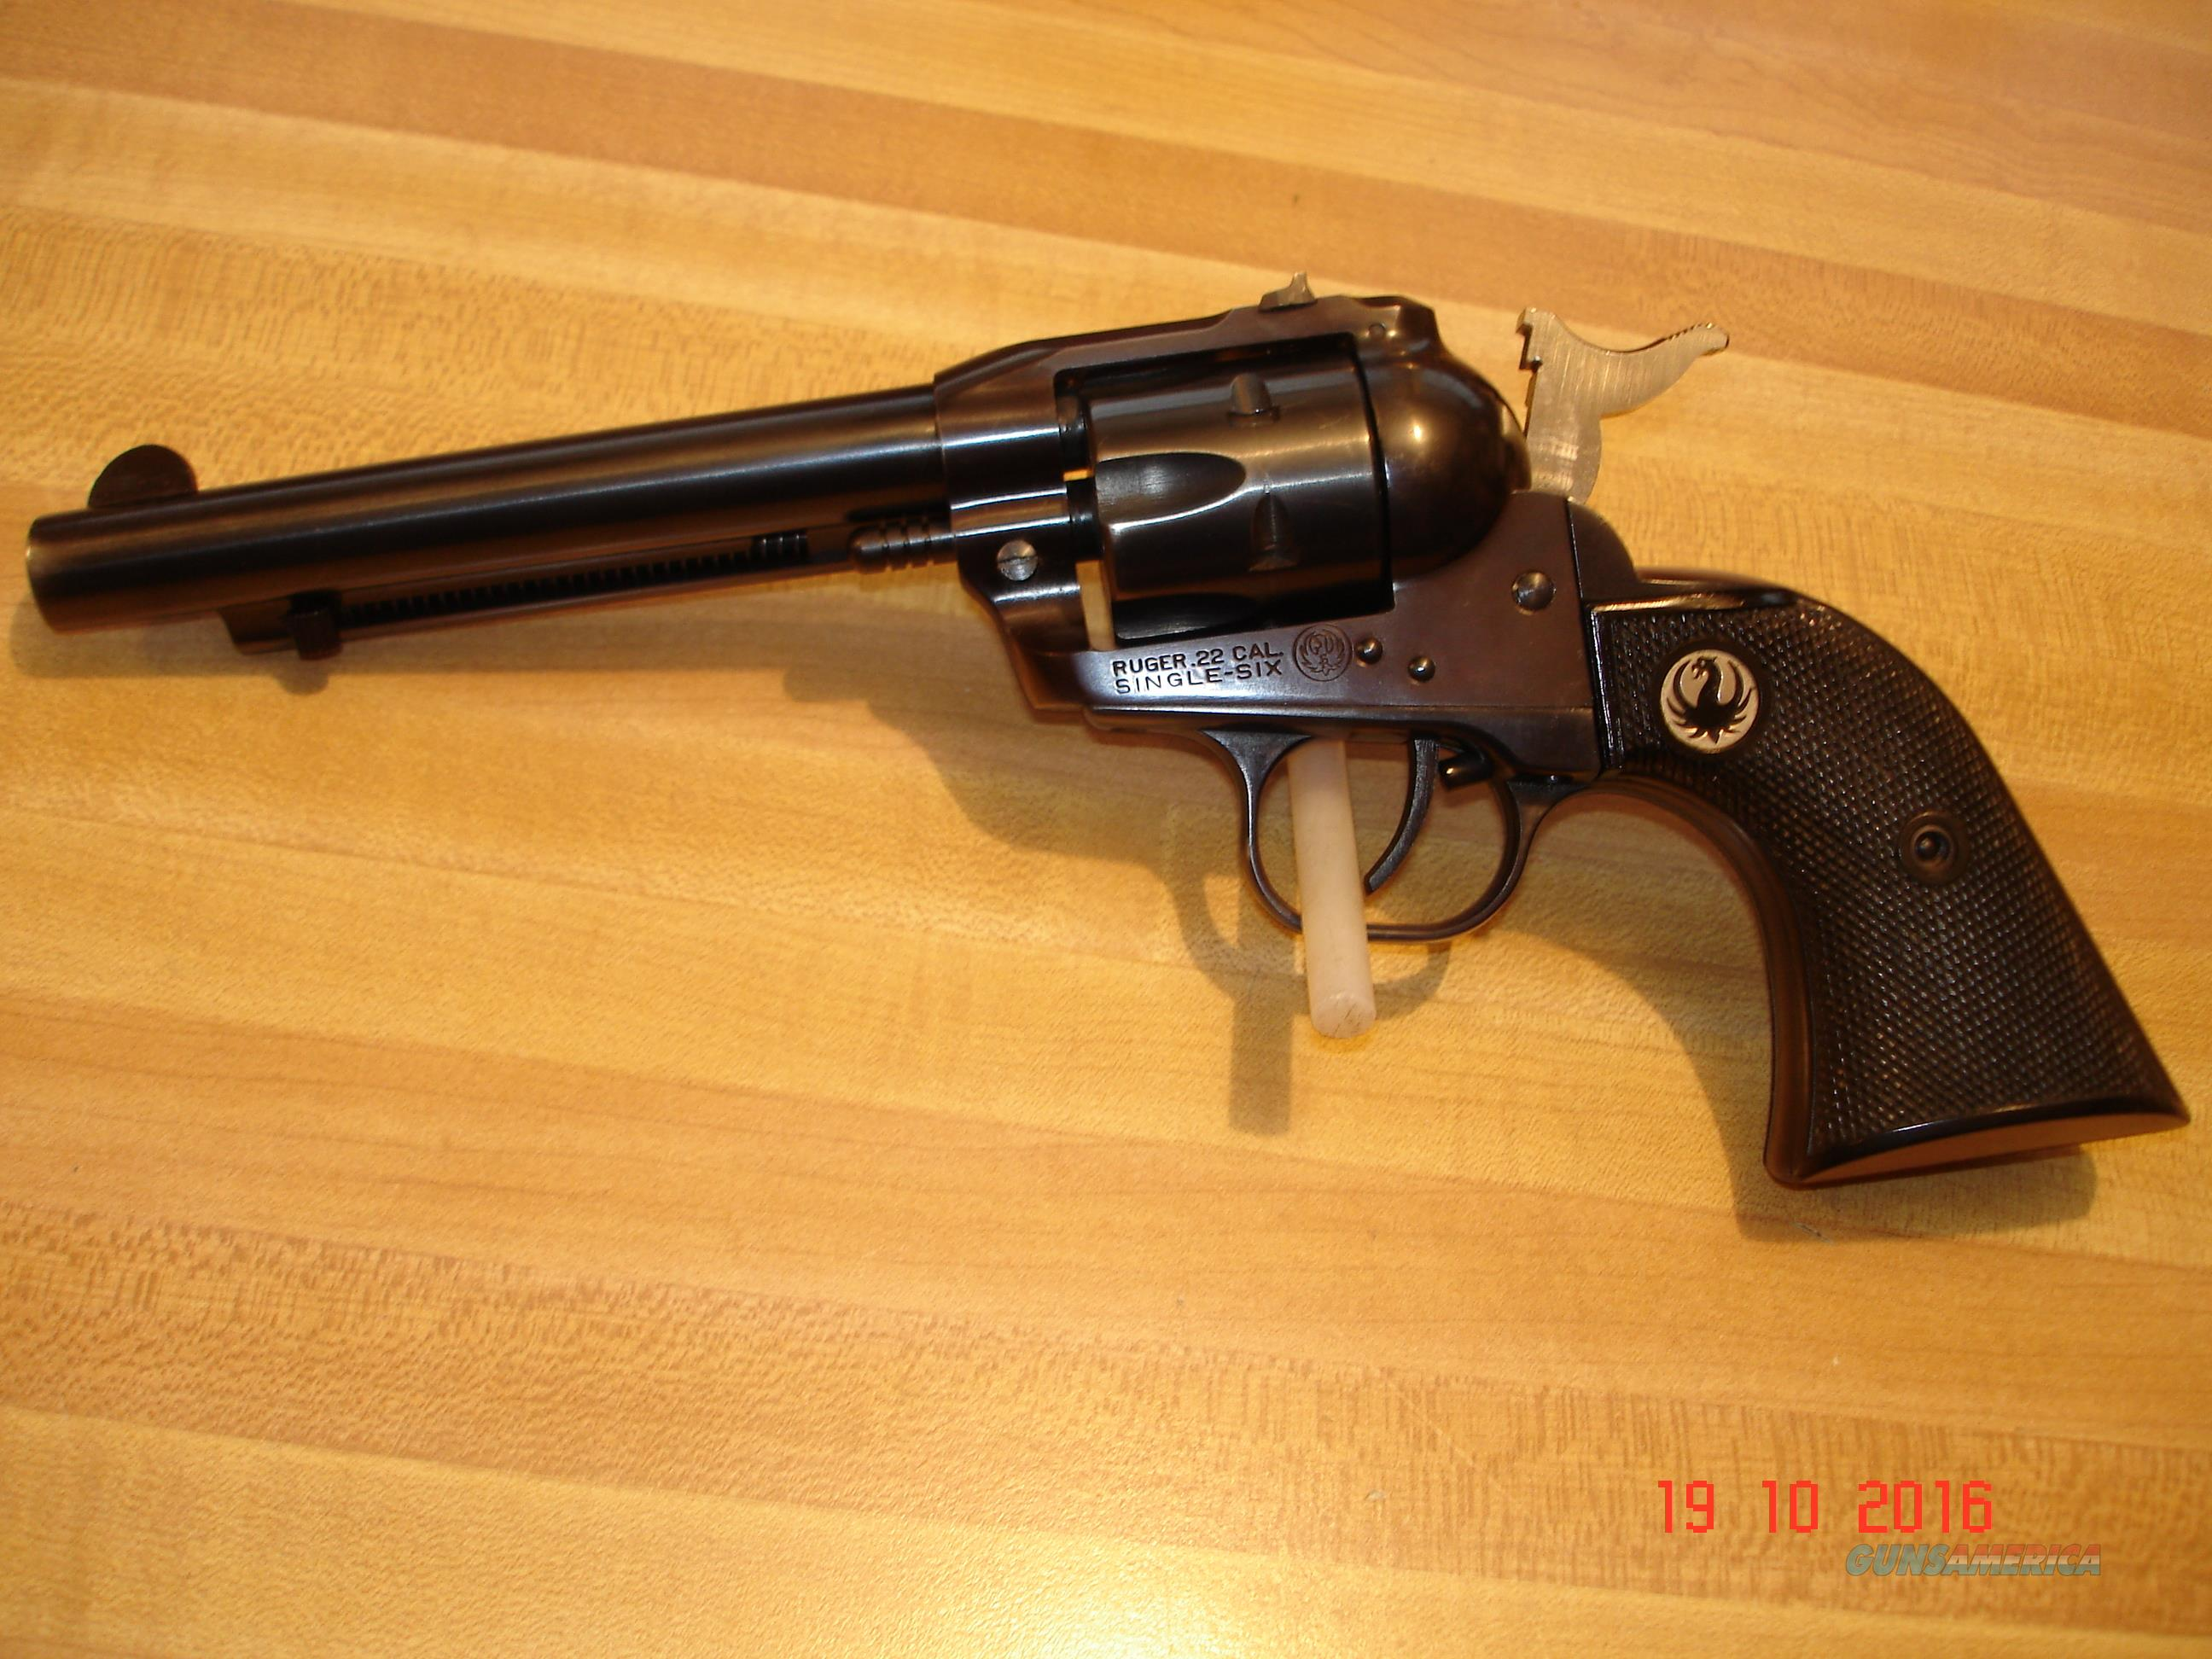 "Ruger Single six Flat Gate 3-Screw 5 1/2"" Excellent MFG 1956 .22LR  Guns > Pistols > Ruger Single Action Revolvers > Single Six Type"